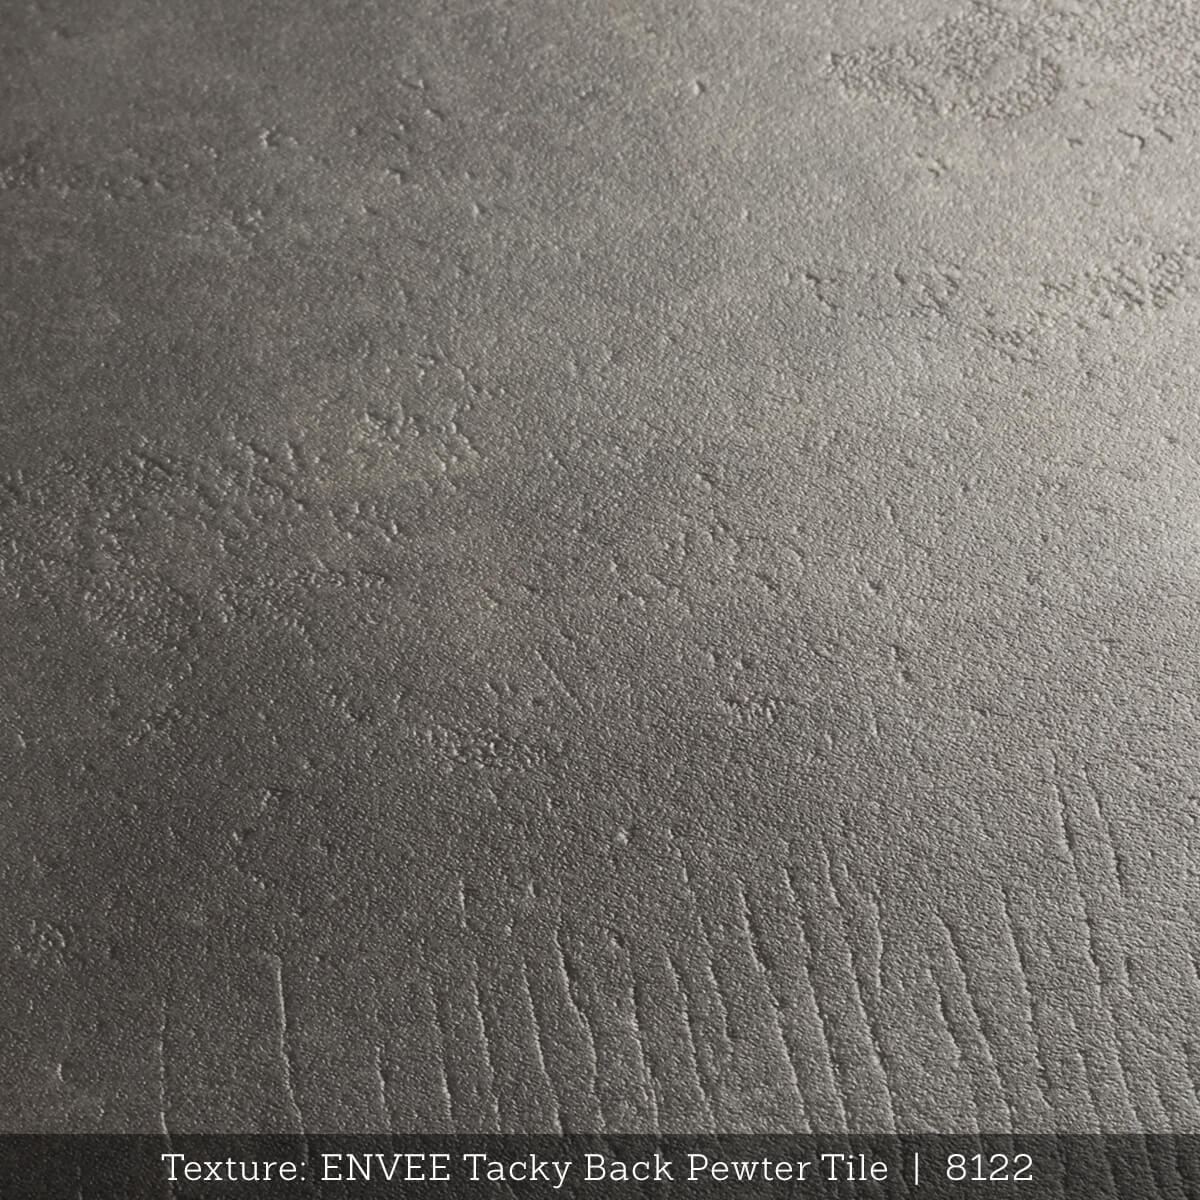 Envee Tacky Back, Pewter Tile